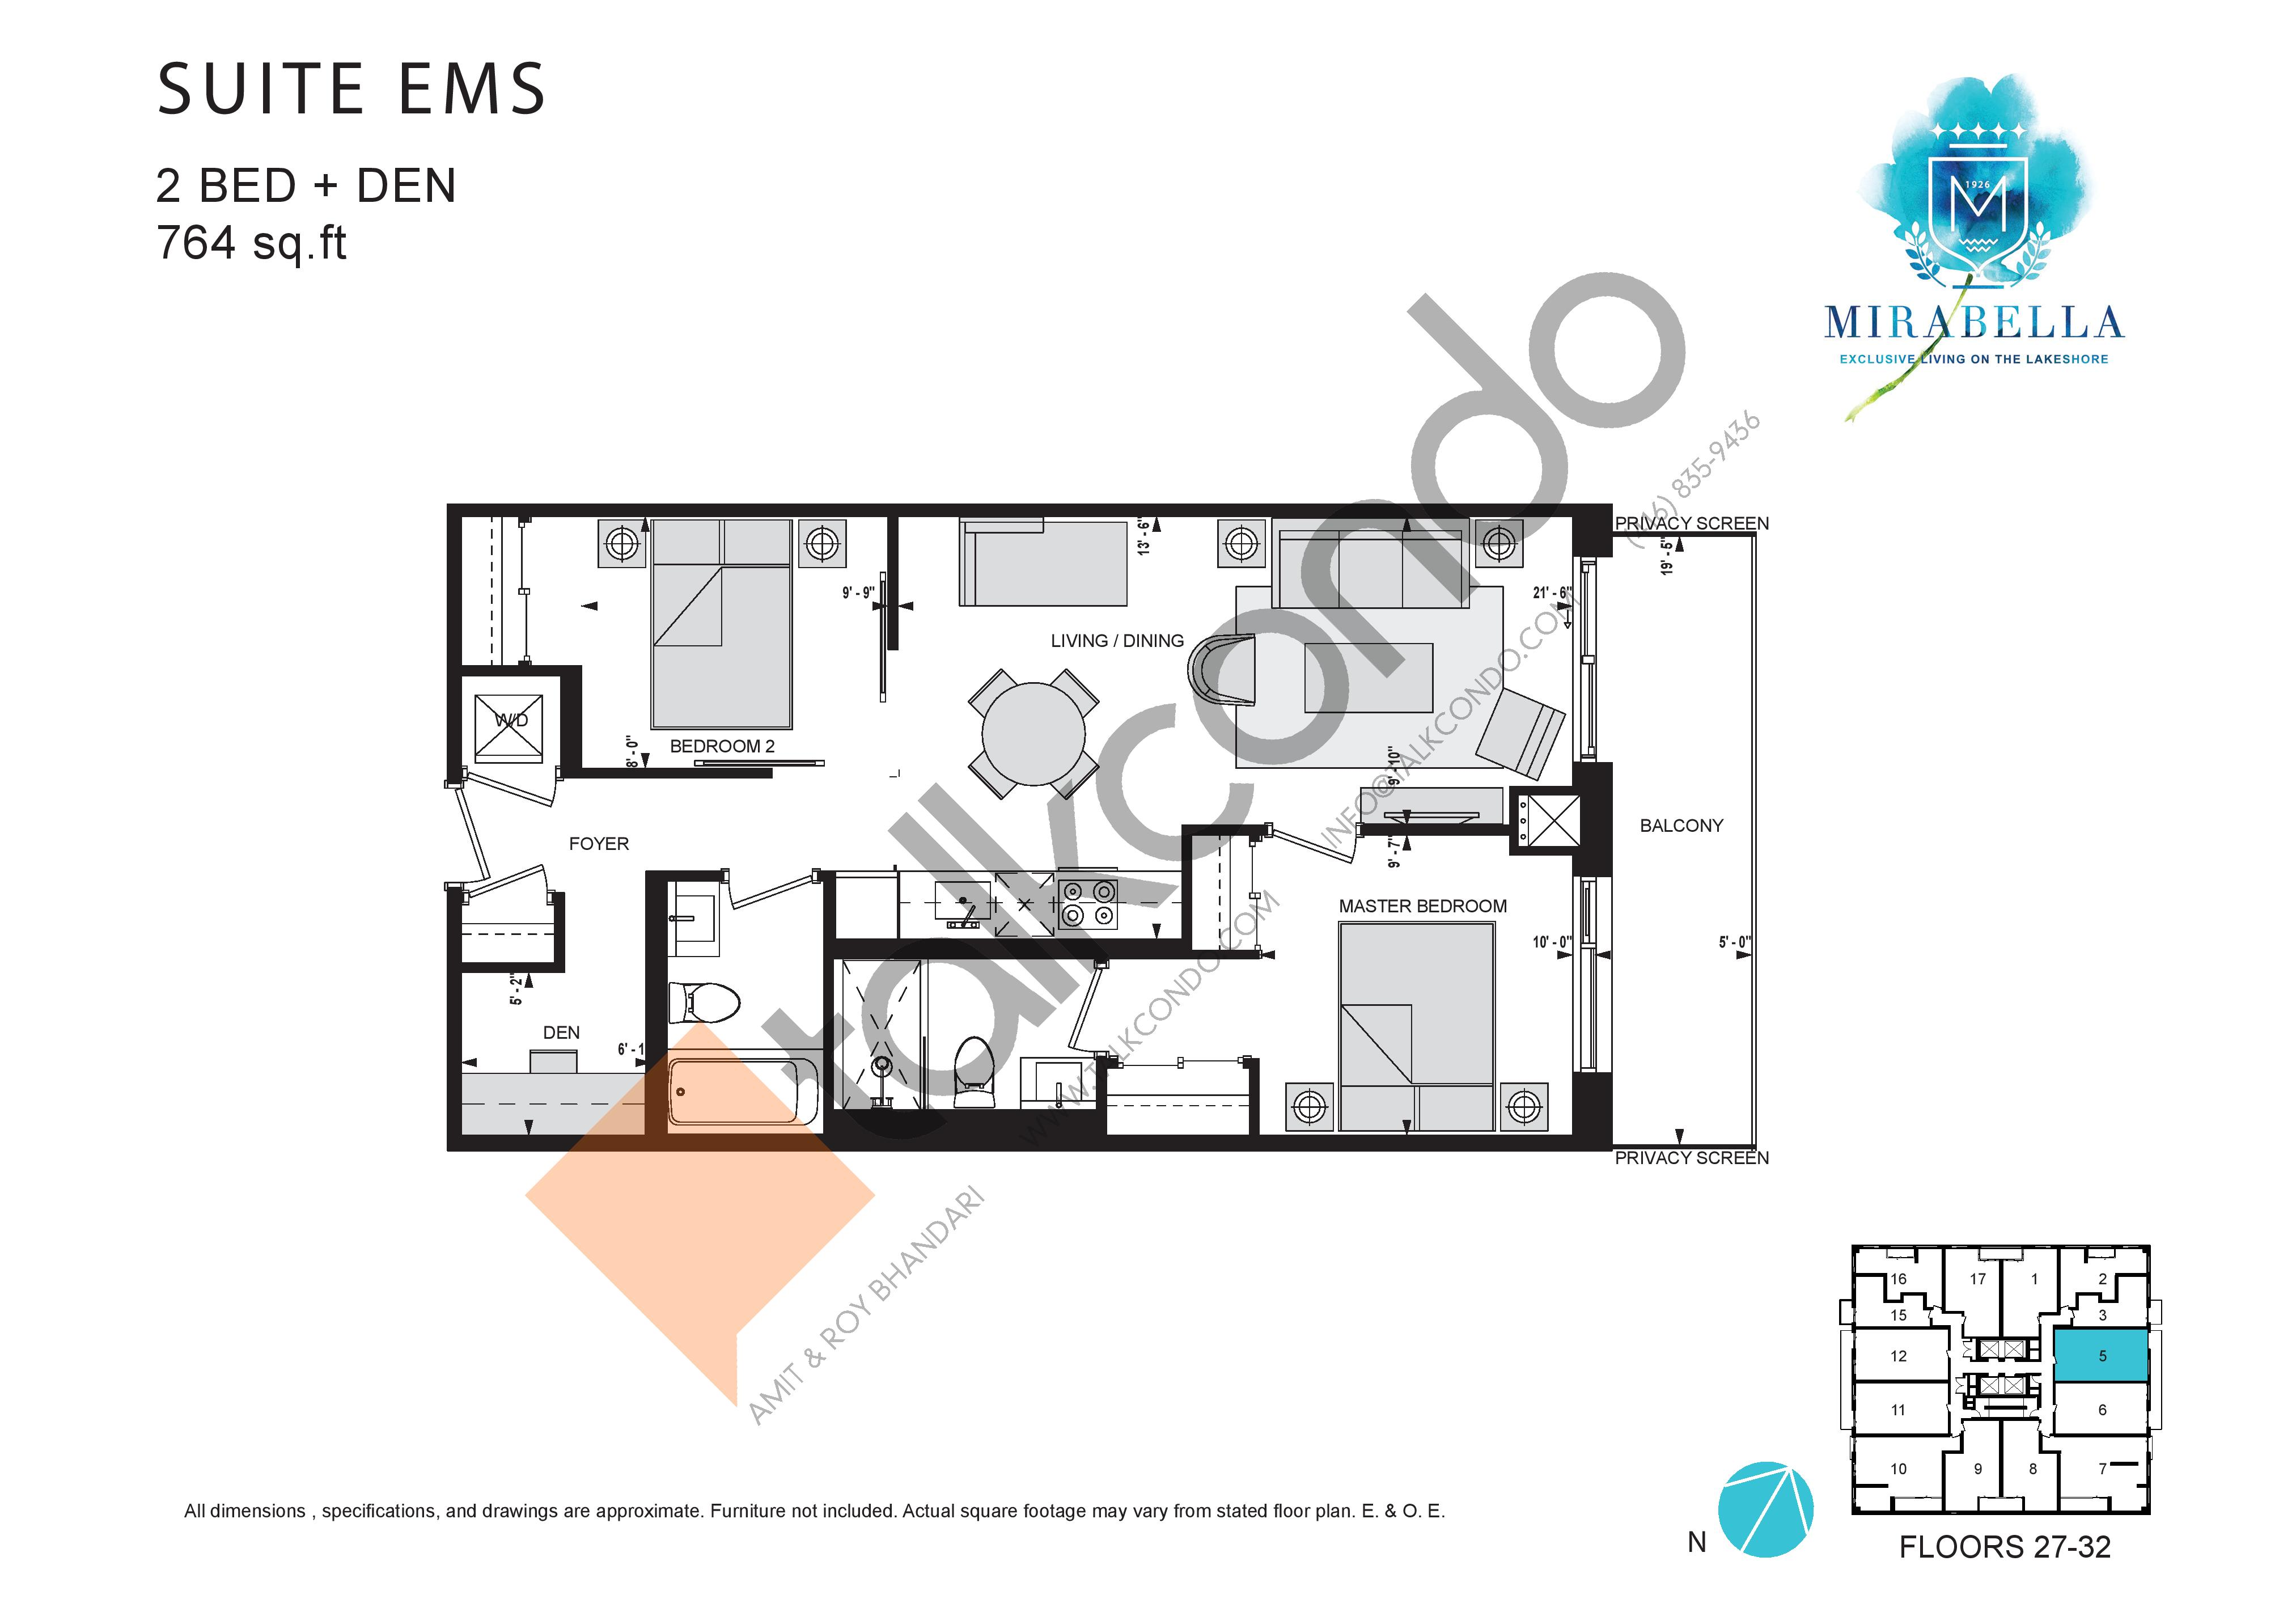 Suite EMS Floor Plan at Mirabella Luxury Condos East Tower - 764 sq.ft